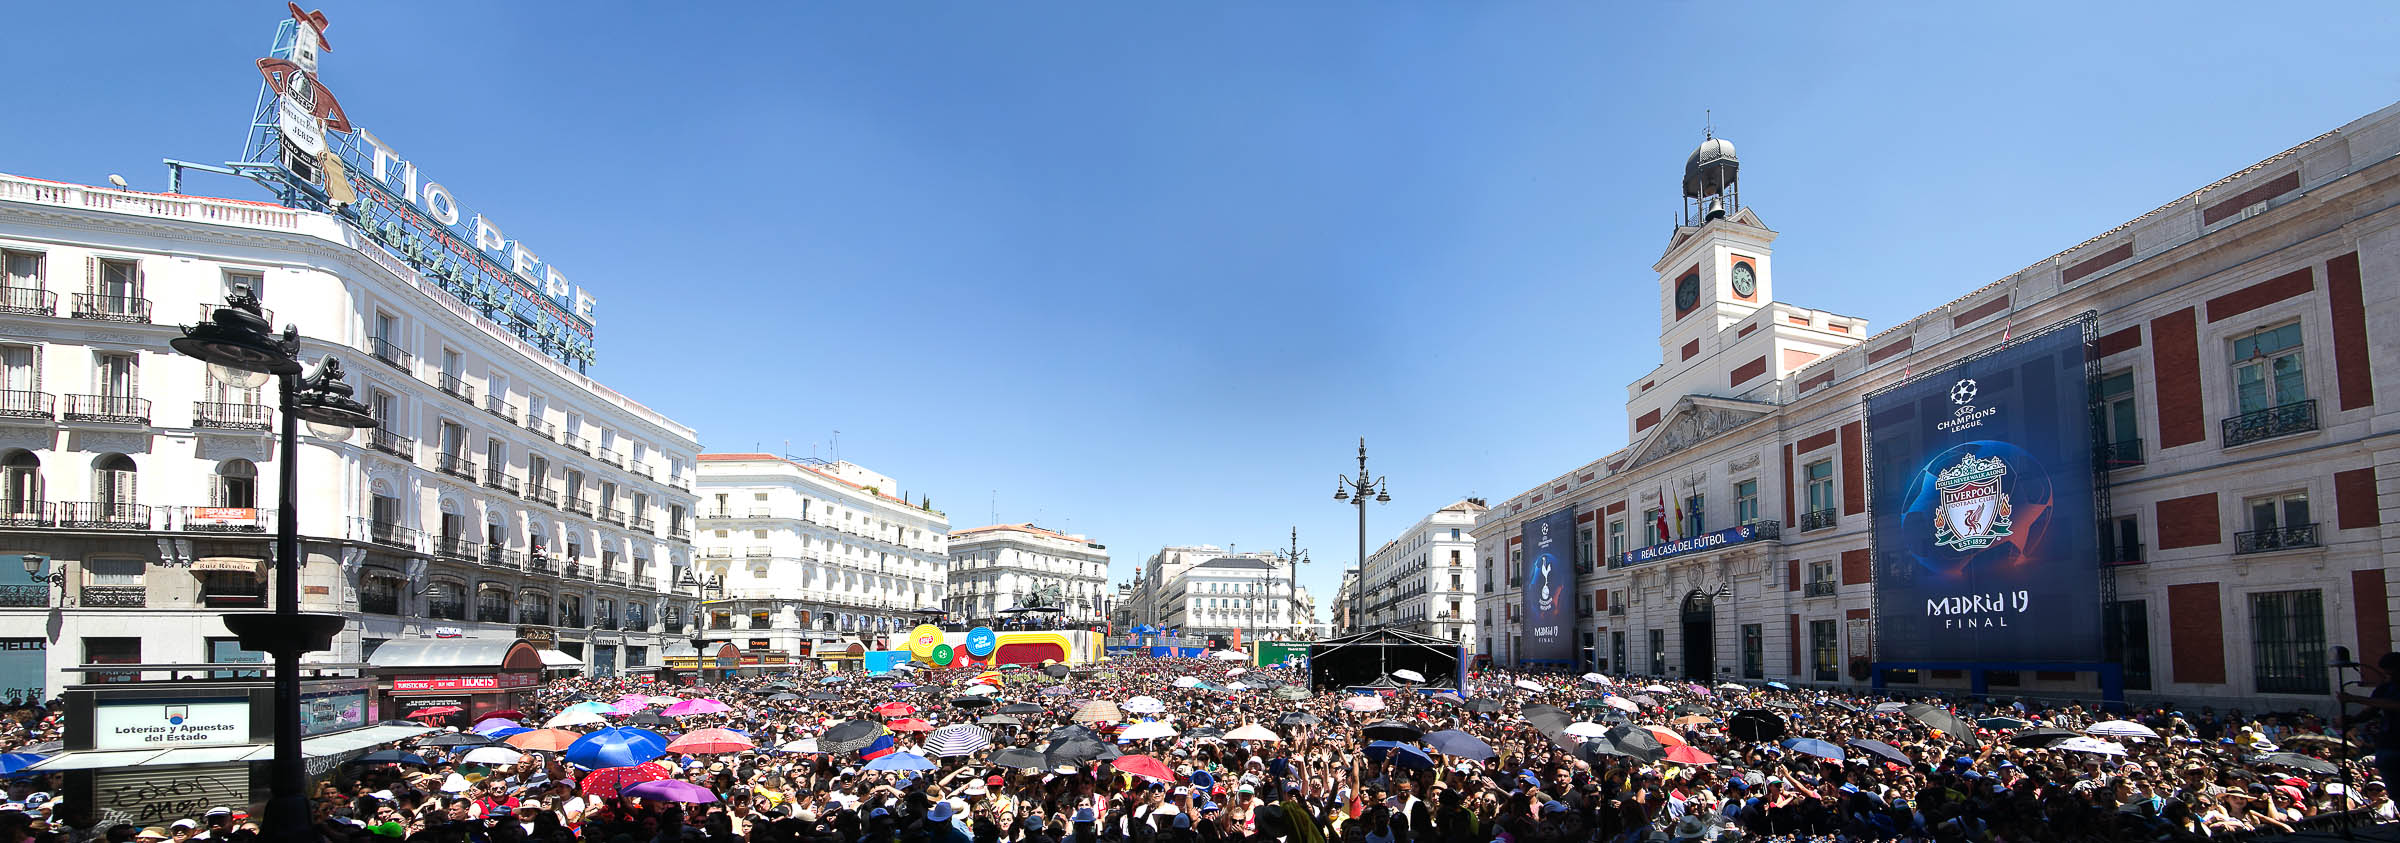 Panoramic photography uefa puerta del sol madrid